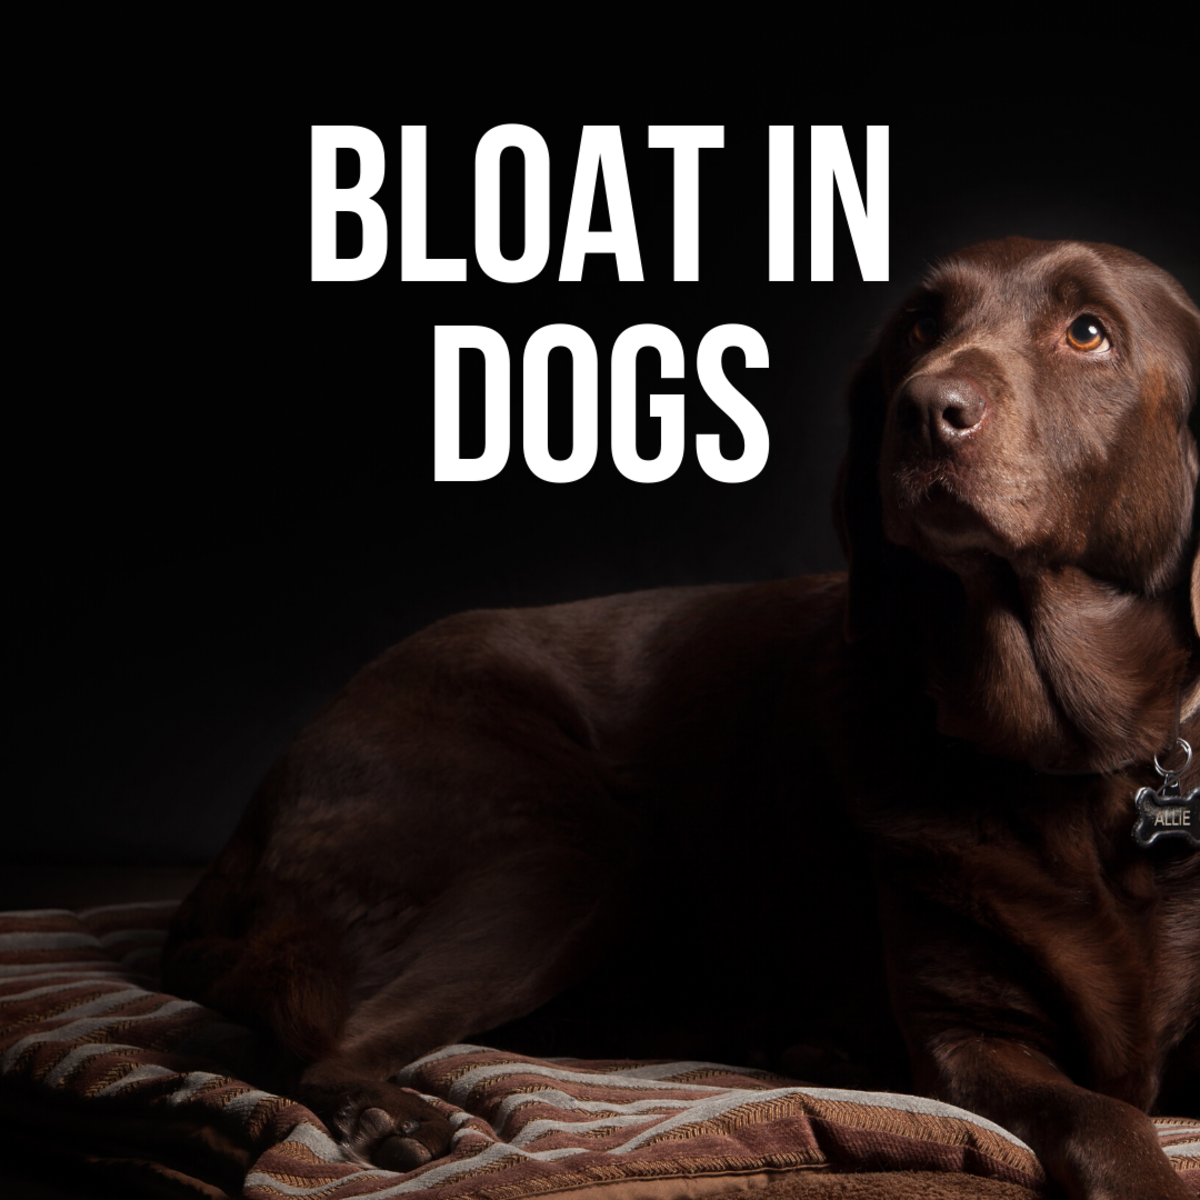 Dog Bloat: Symptoms, Causes, Treatment, and Prevention